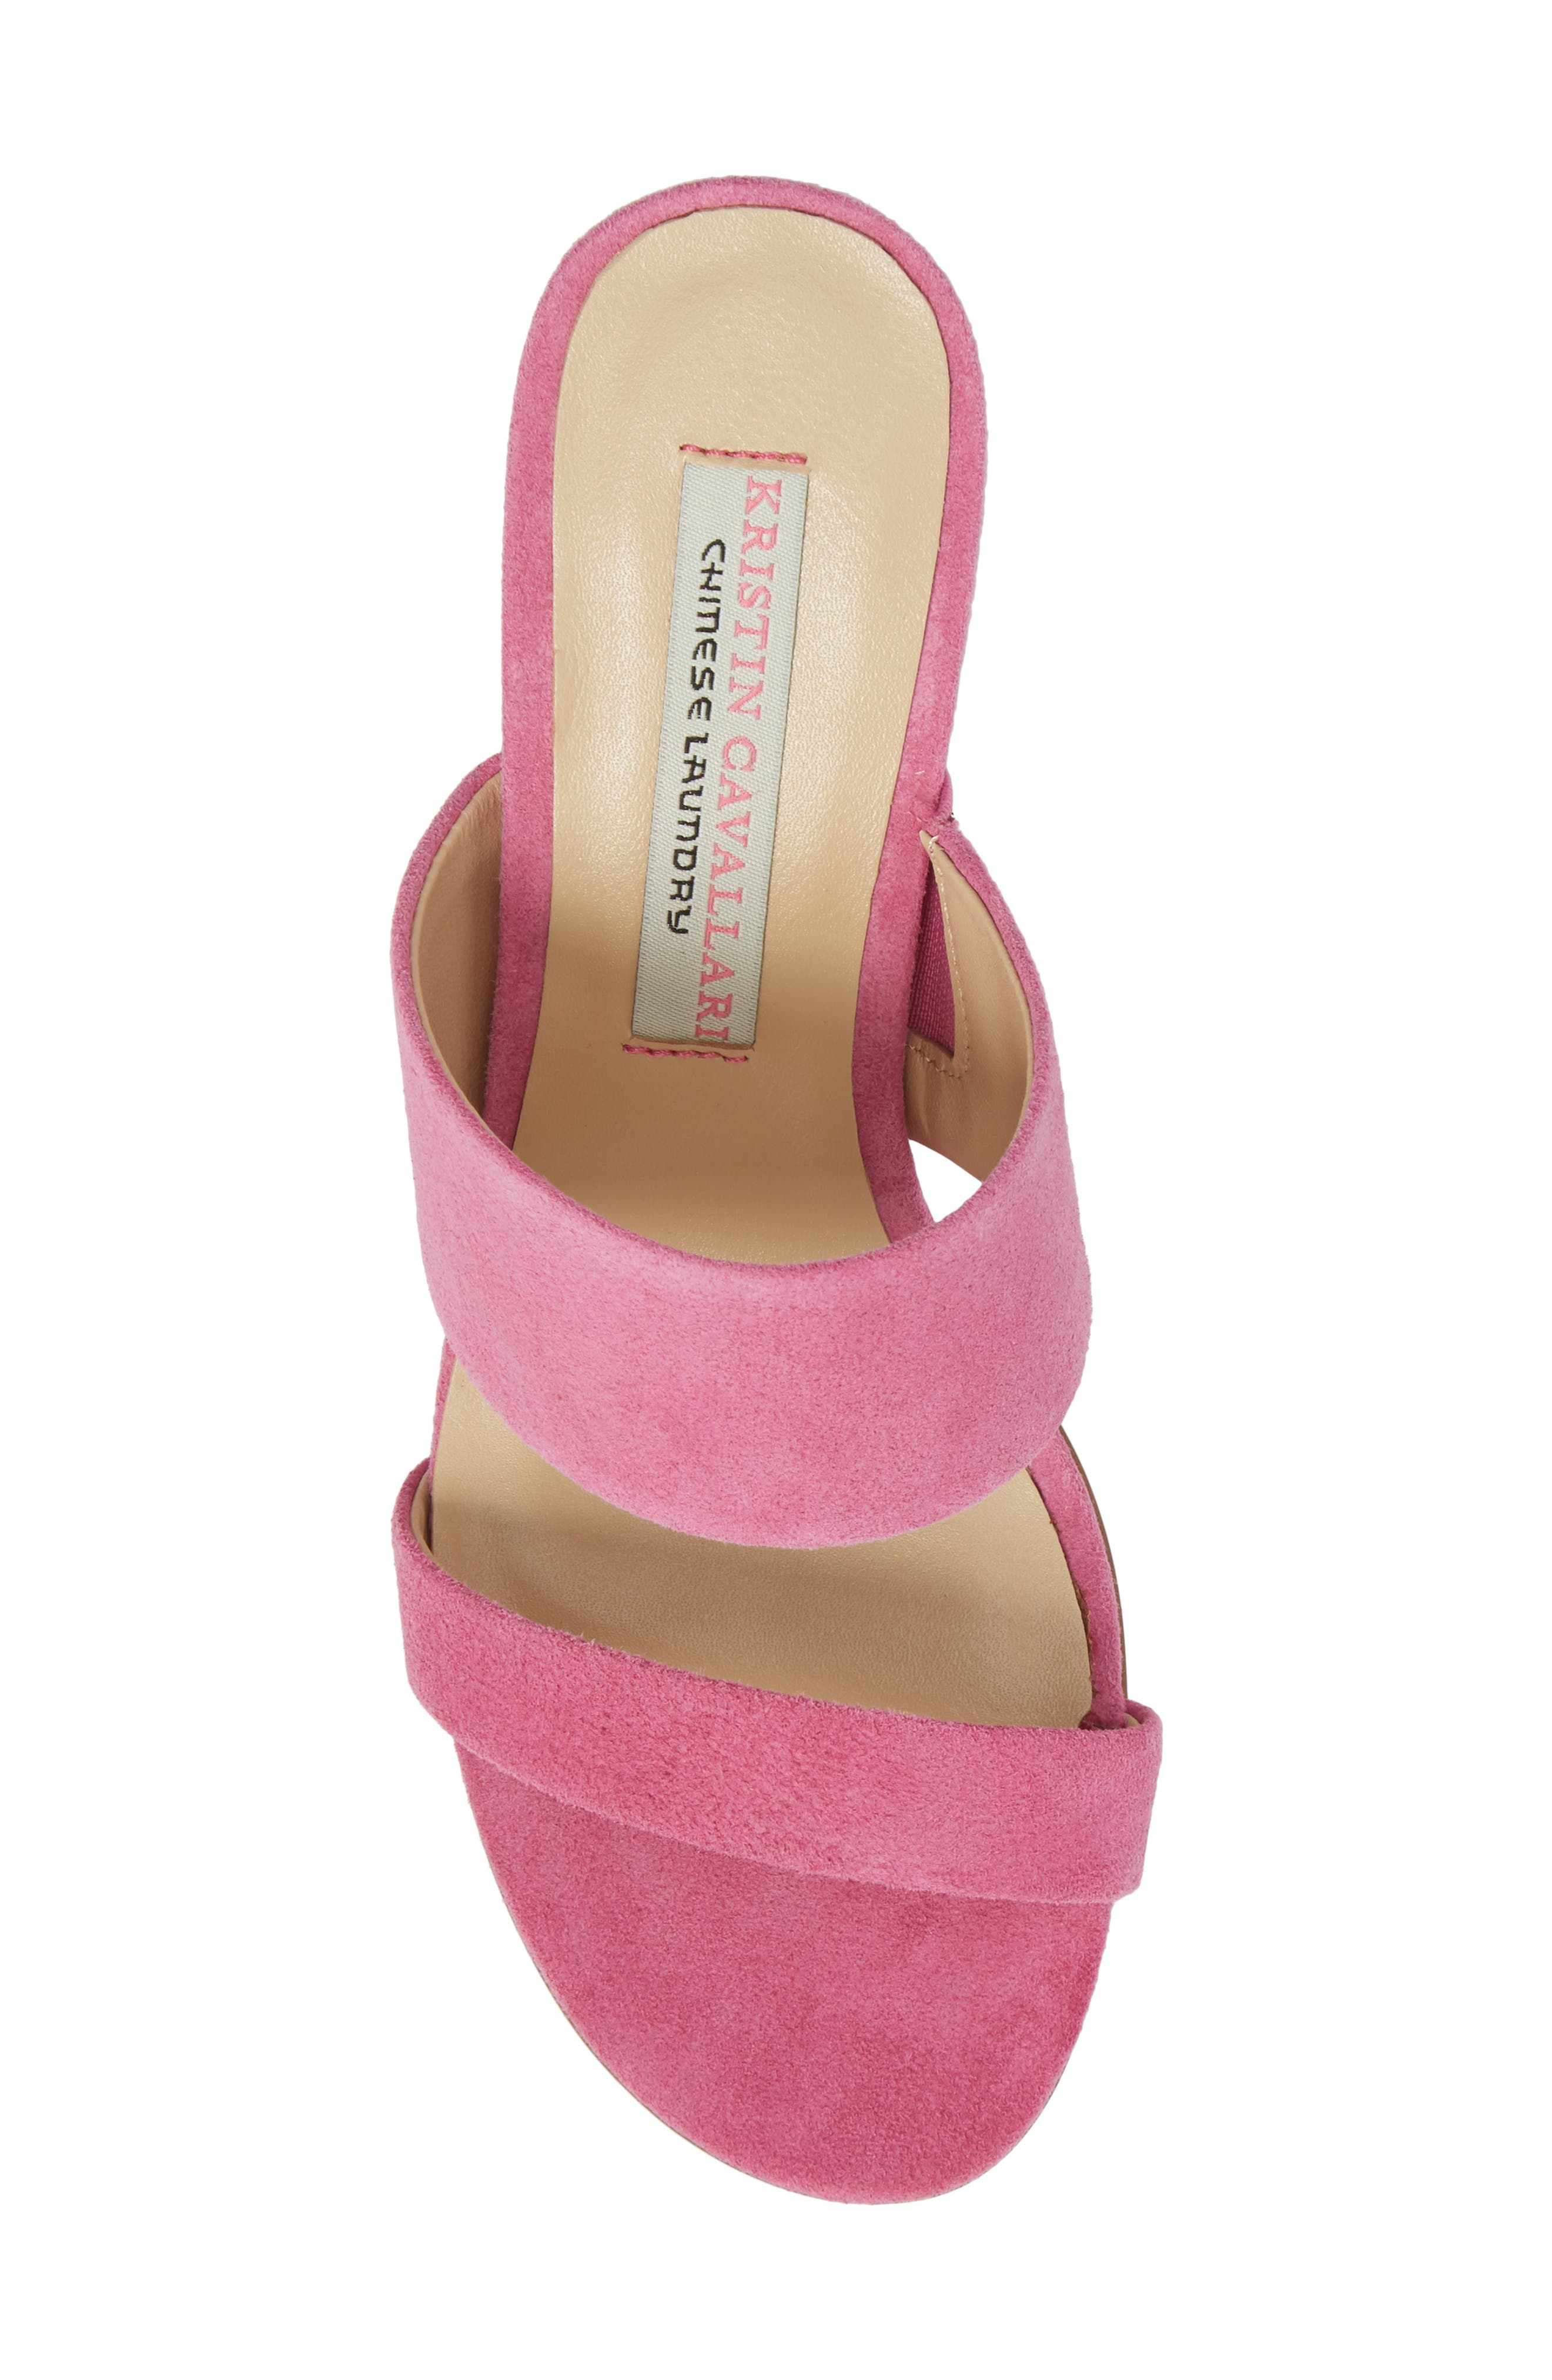 Lakeview Sandal,                             Alternate thumbnail 5, color,                             Fuchsia Suede